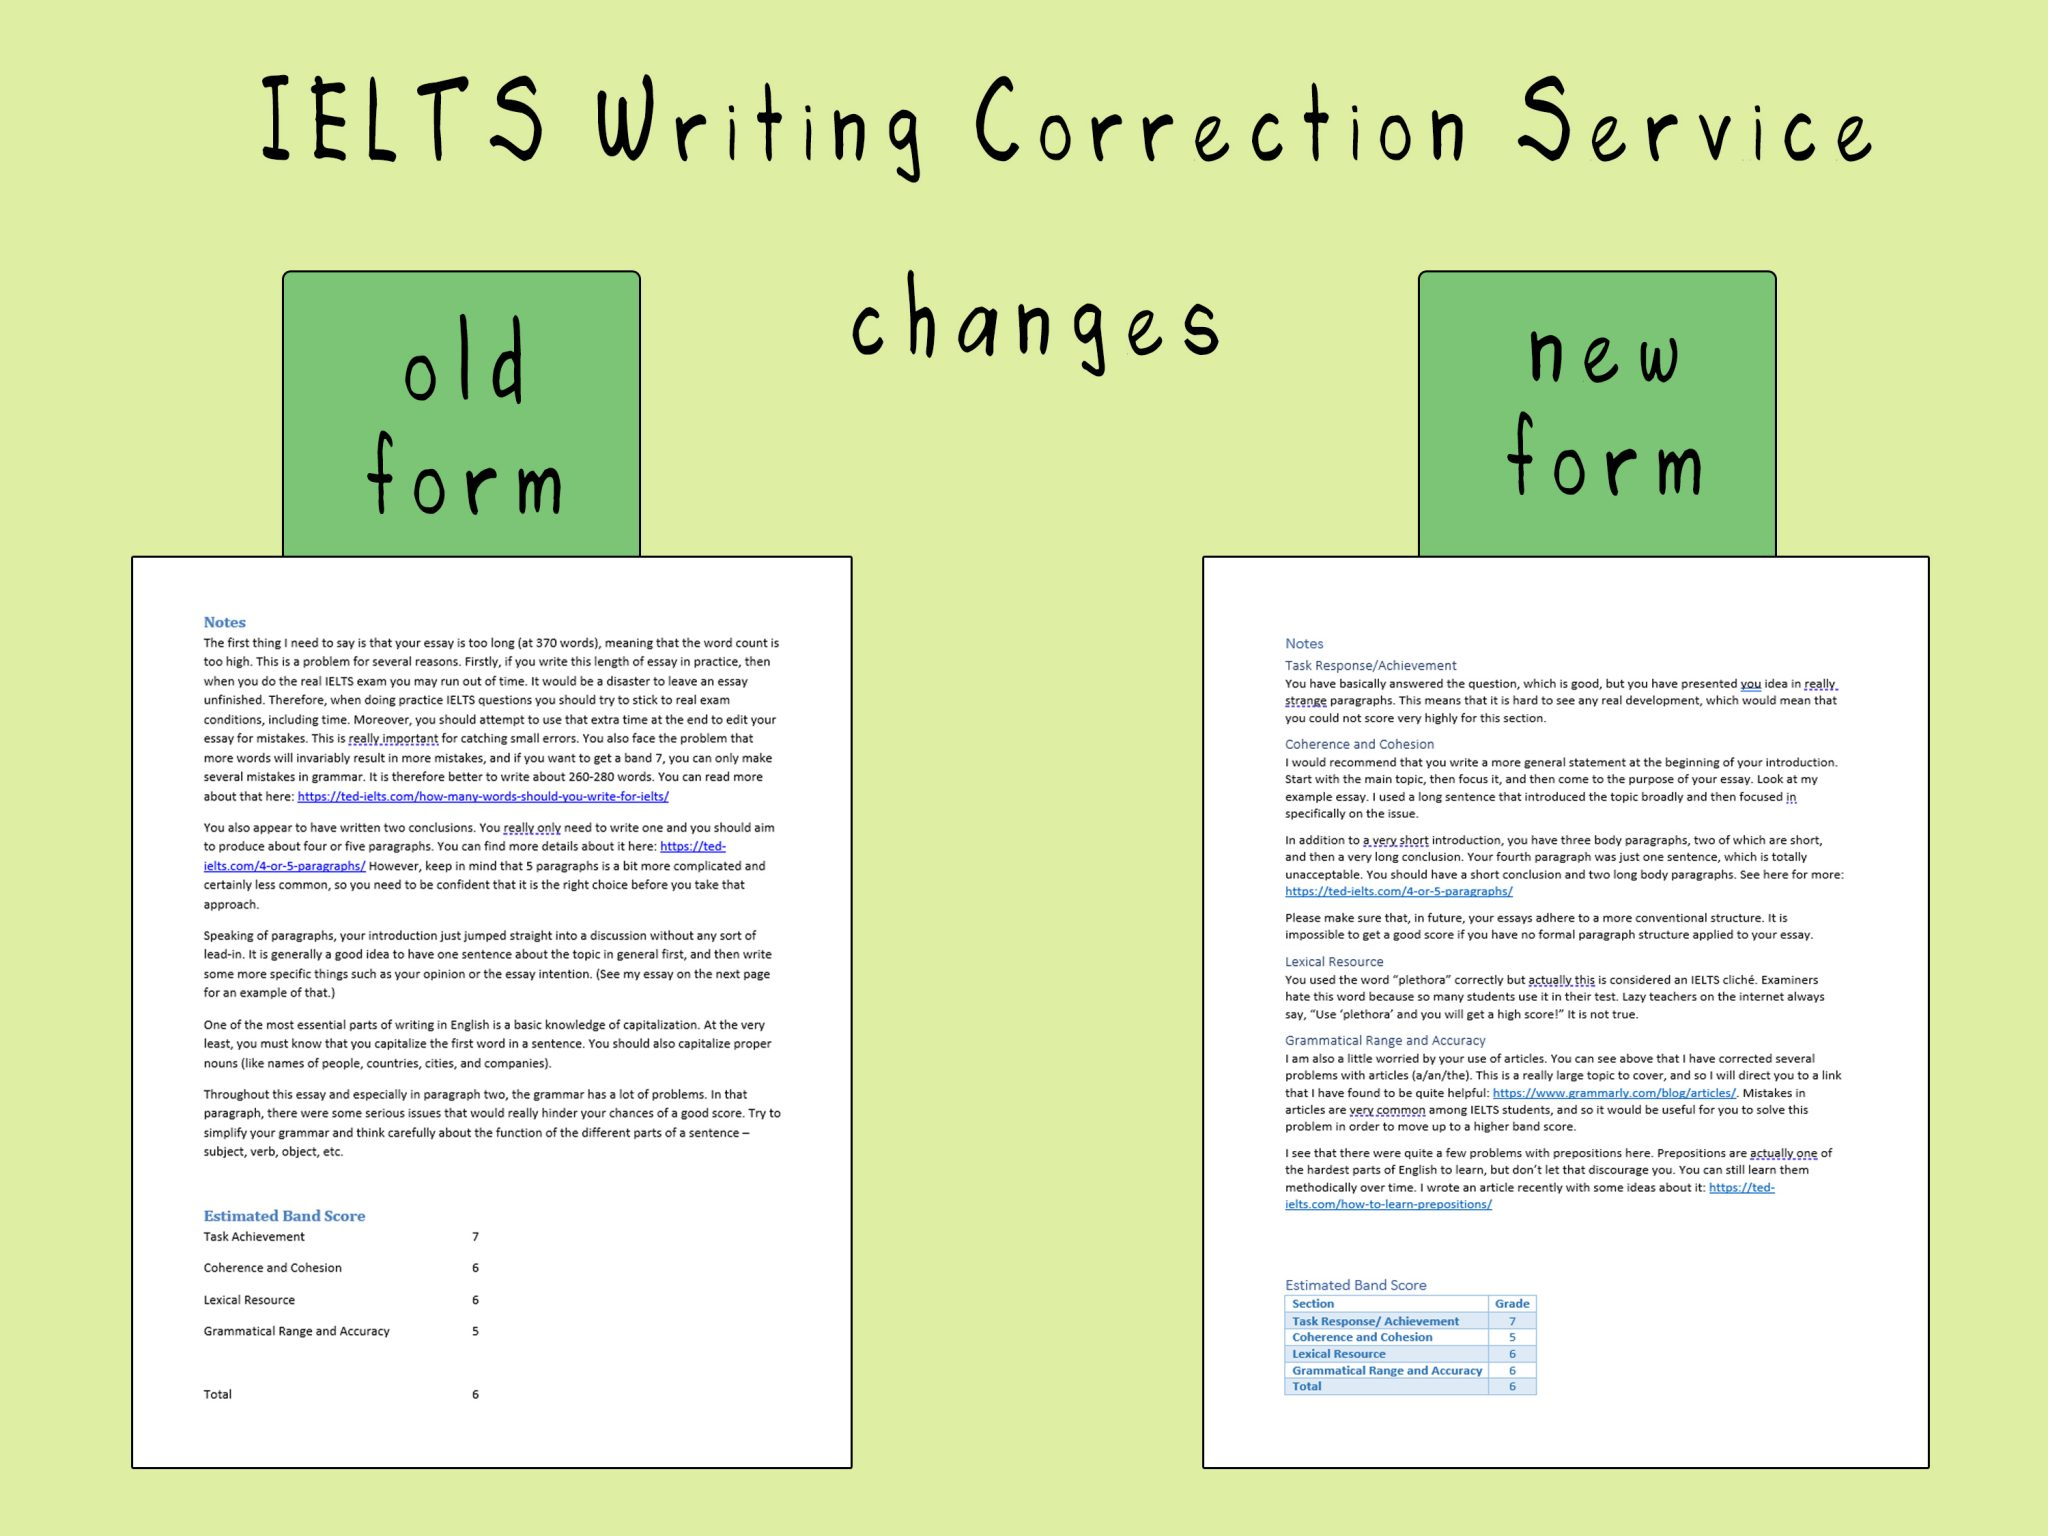 ielts writing correction service - changes and improvements